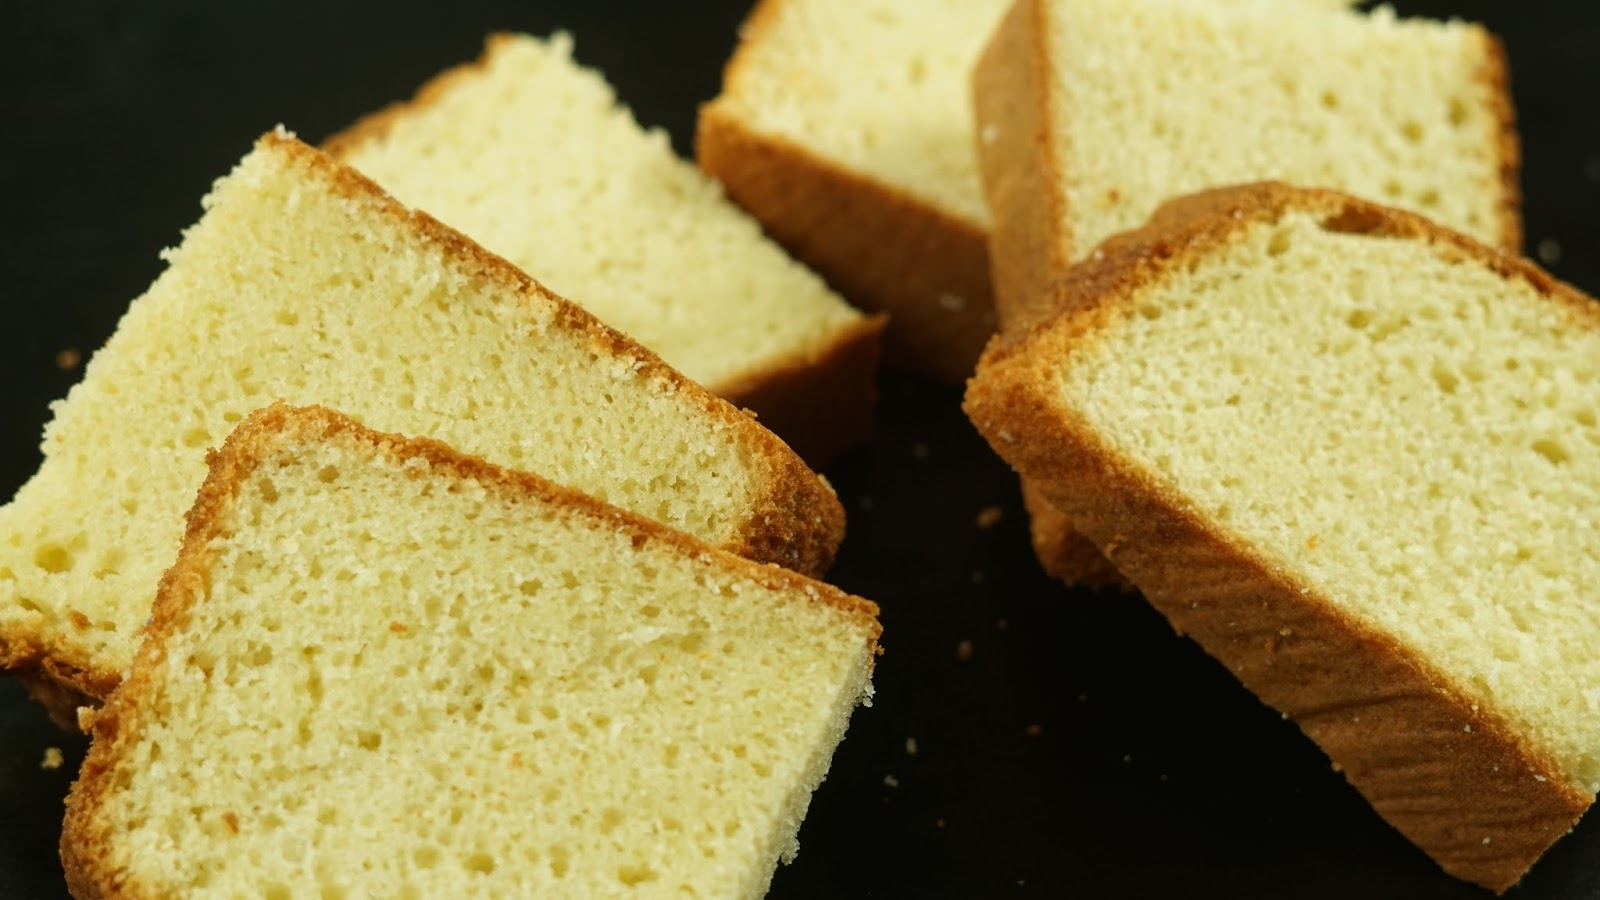 The Top 20 Ideas About What Is Sponge Cake